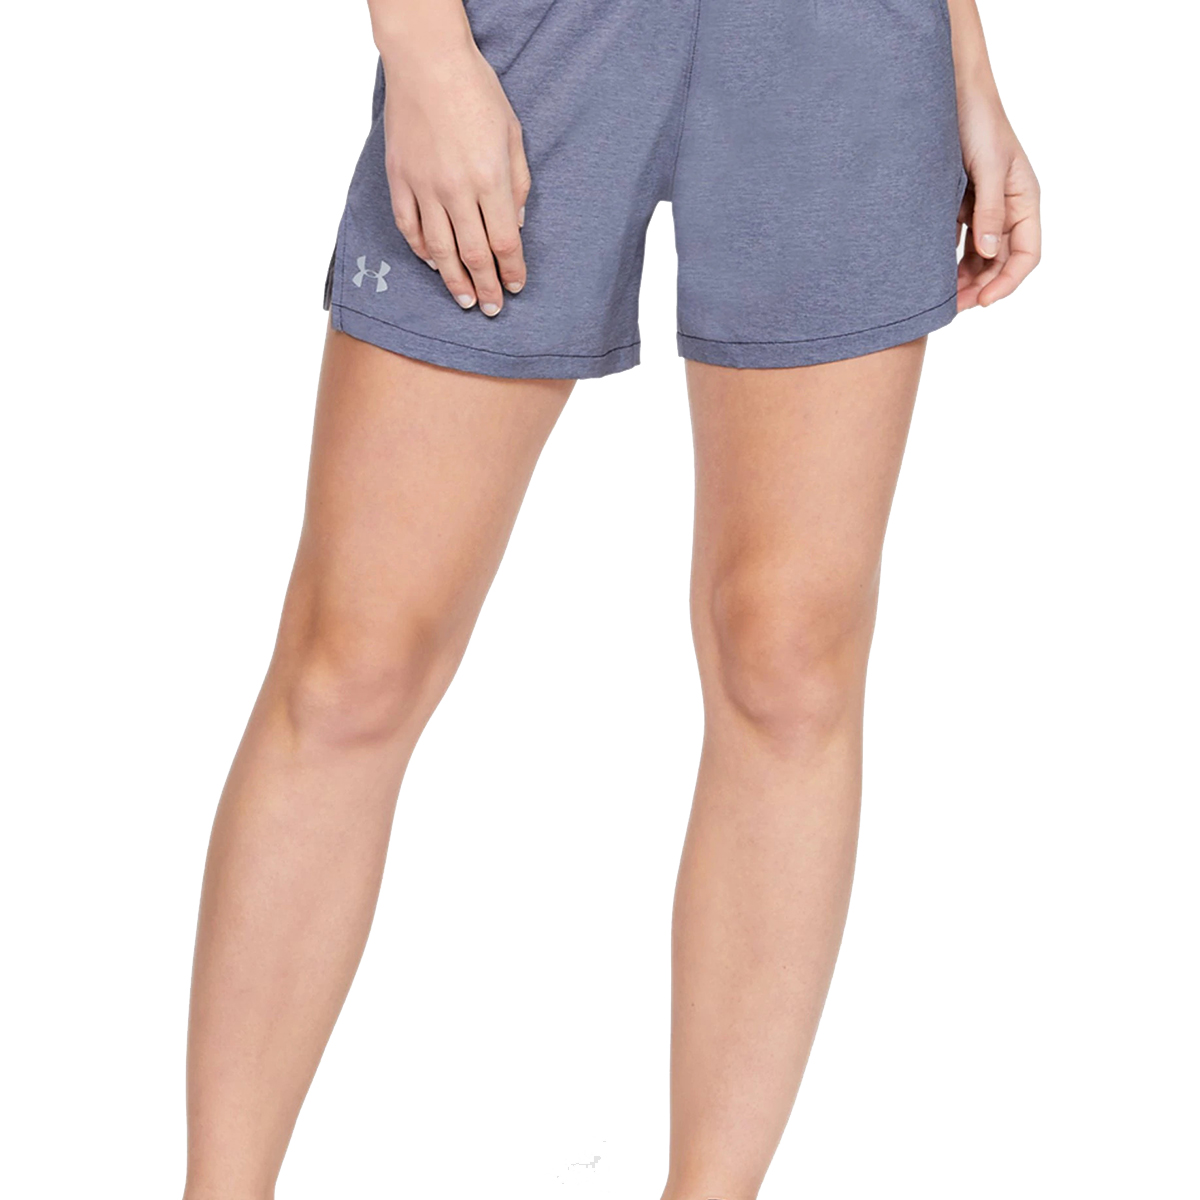 Women's Under Armour Launch SW 5in Shorts - Color: Black Full Heather/Black/Reflective - Size: S, Black Full Heather/Black/Reflective, large, image 2